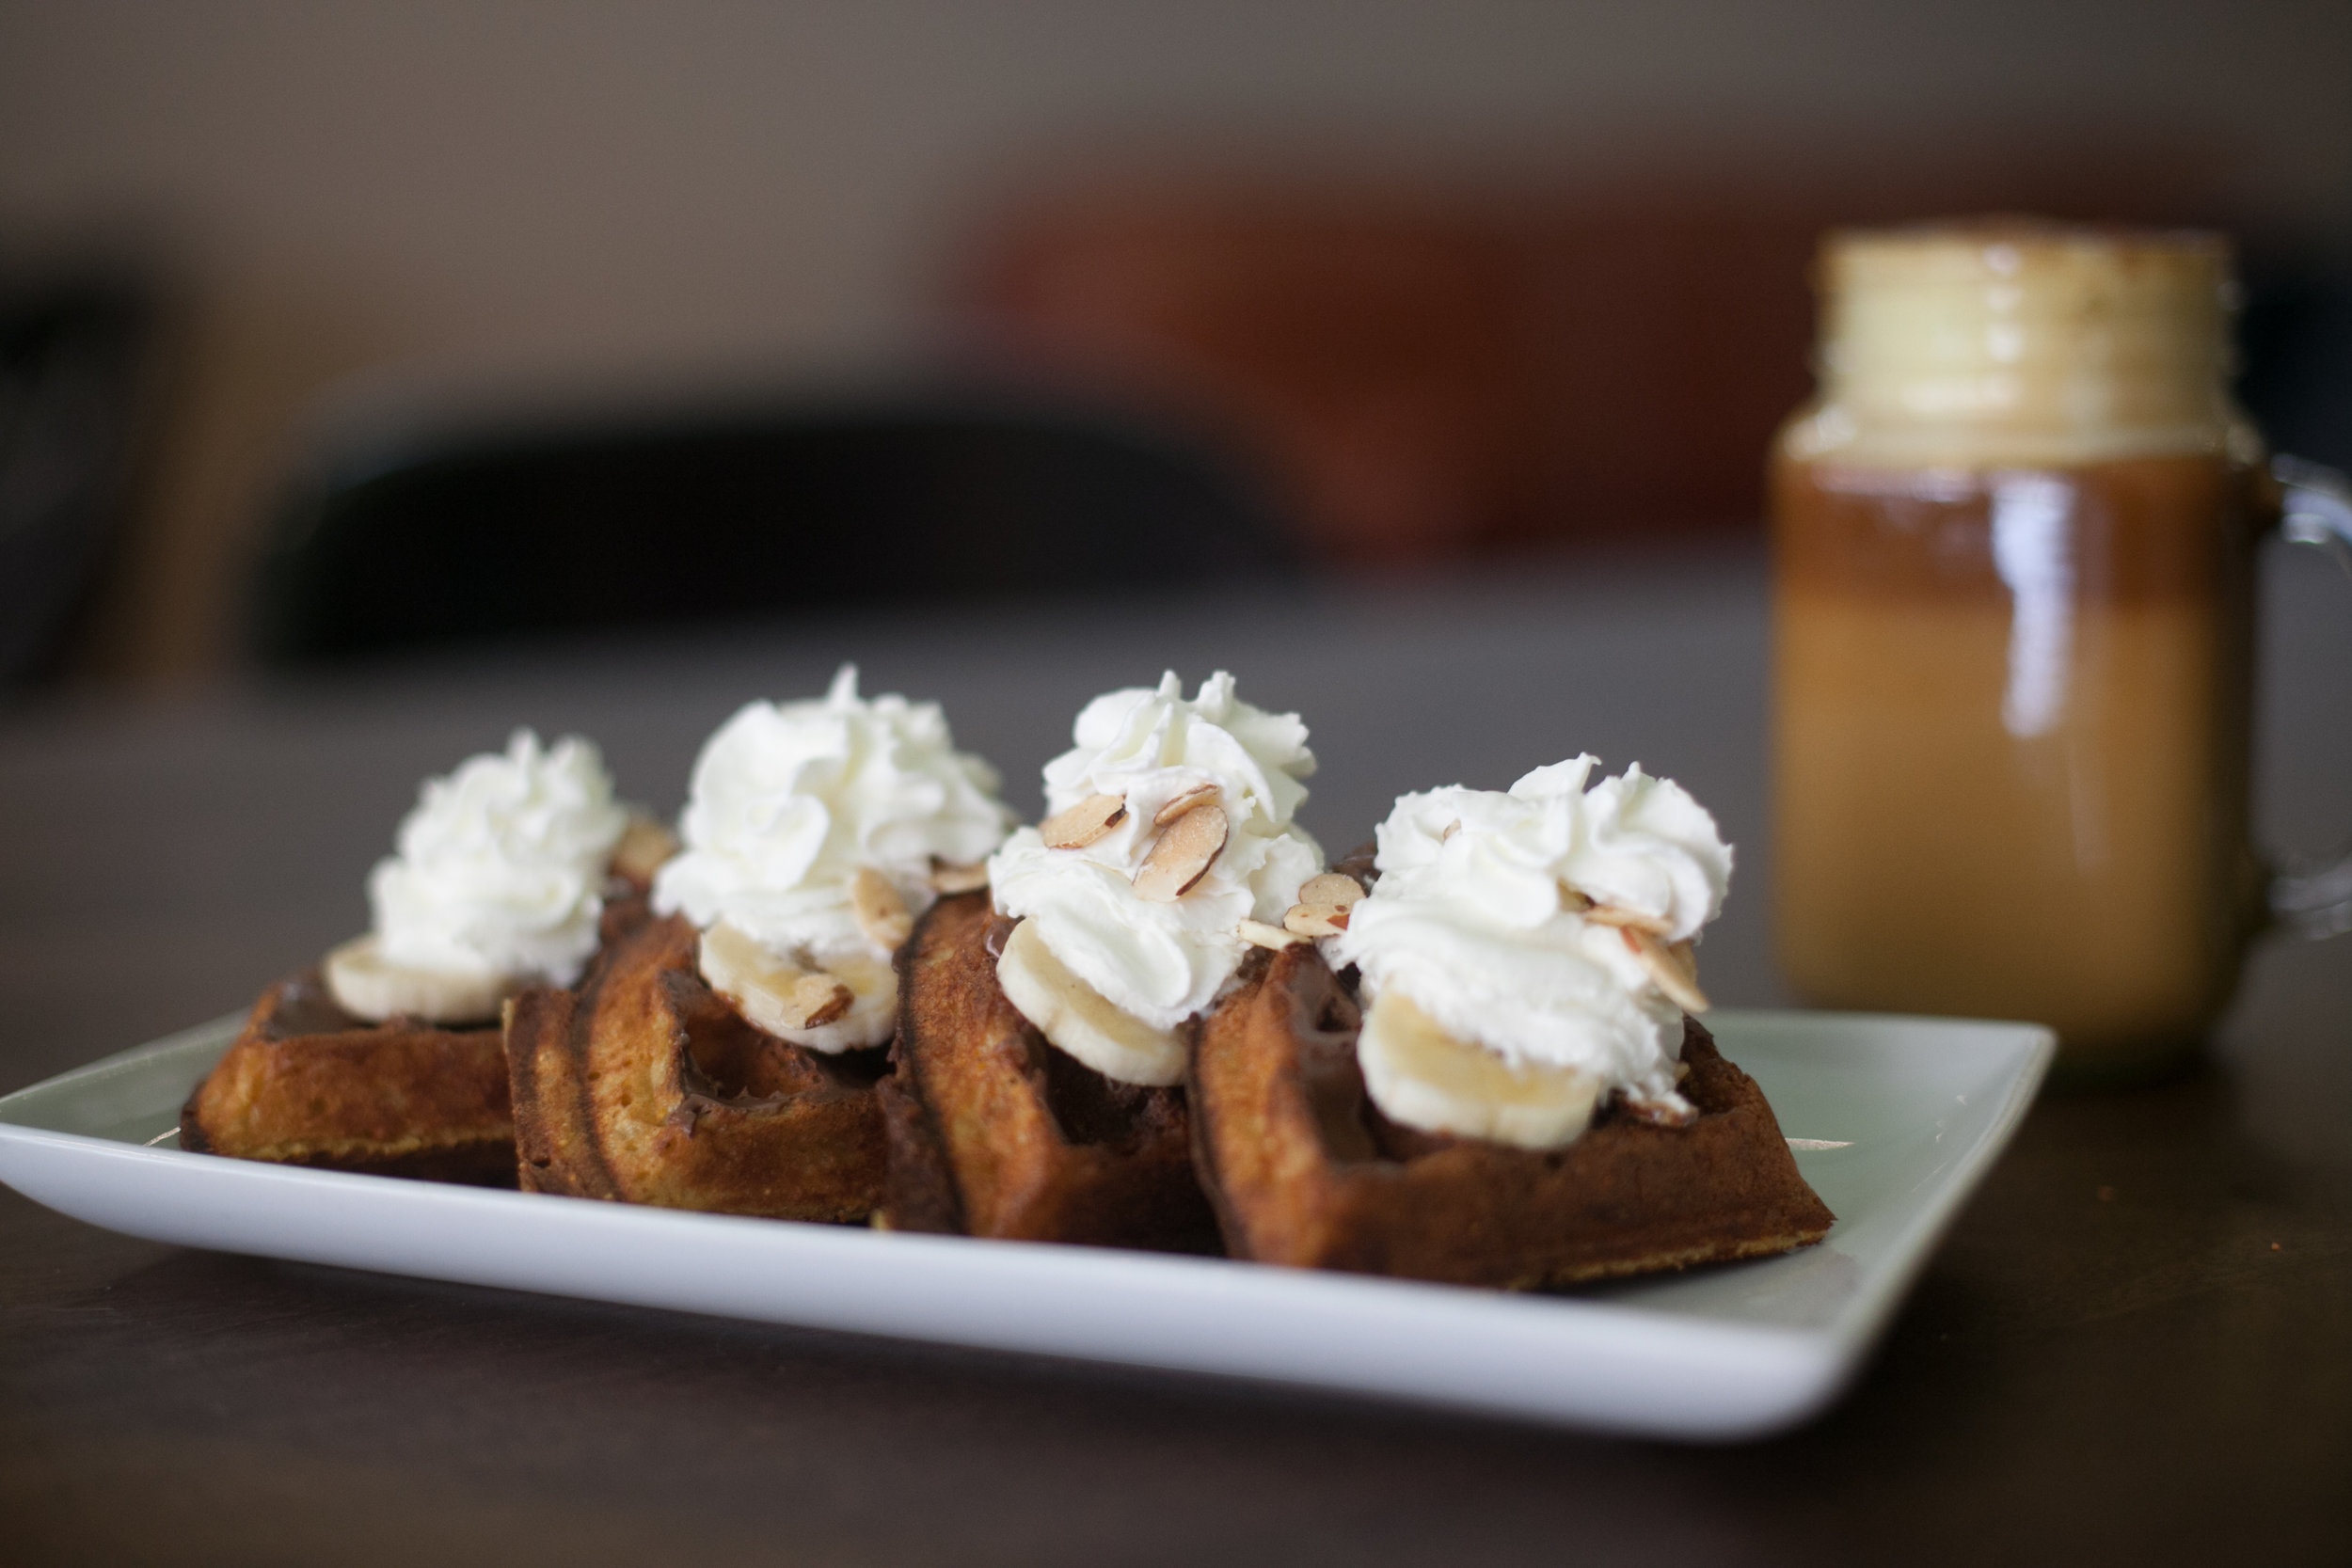 Gusto waffles (Nutella, bananas, almonds and whip cream) and Turmeric Latte Addis Cafe.  Photo by Tina Harle